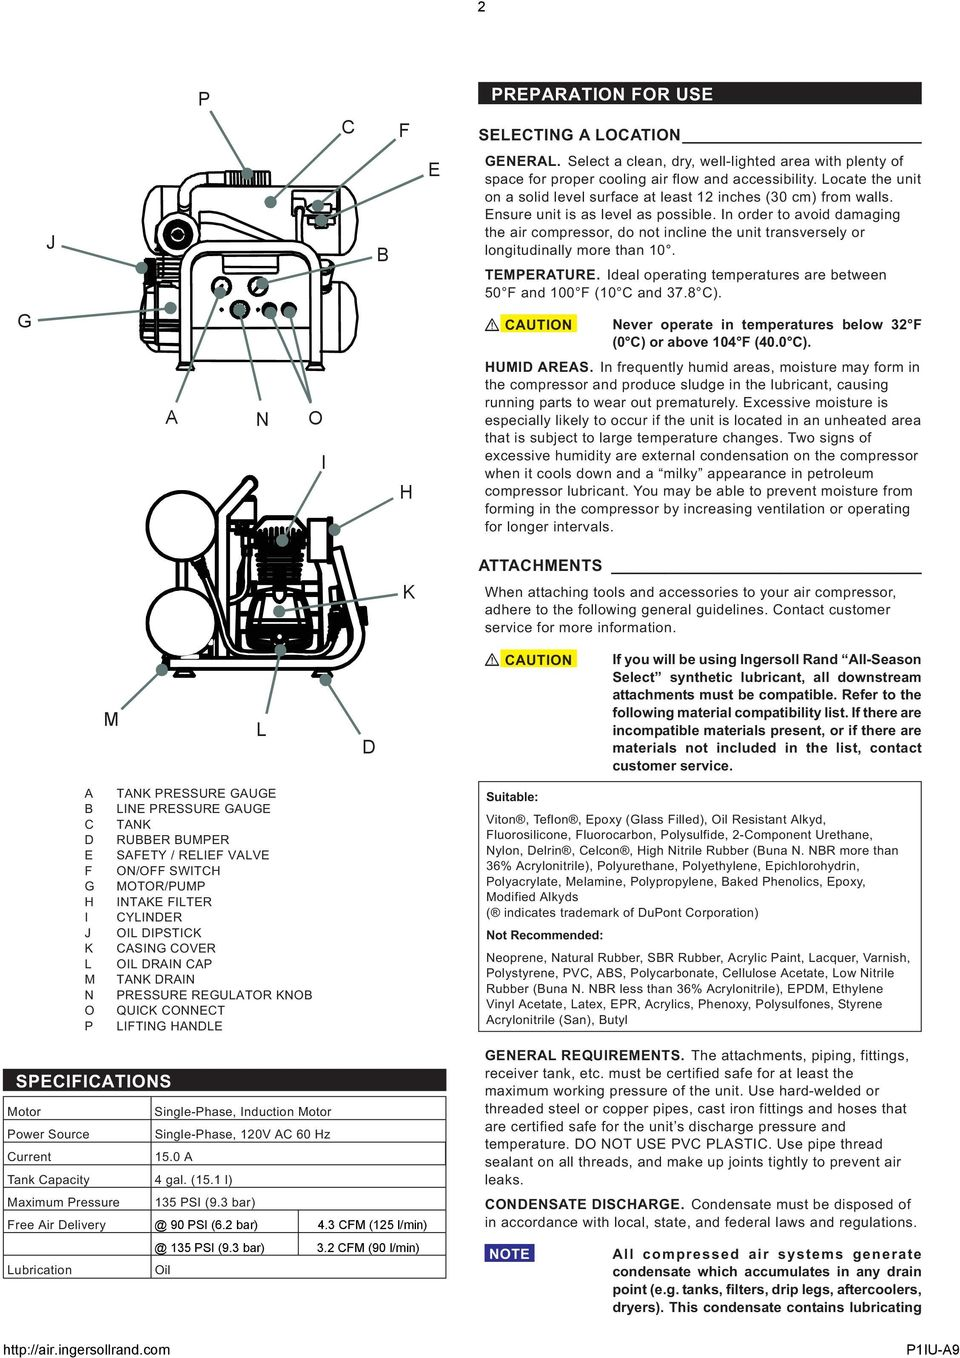 ingersoll rand portable air compressor manual